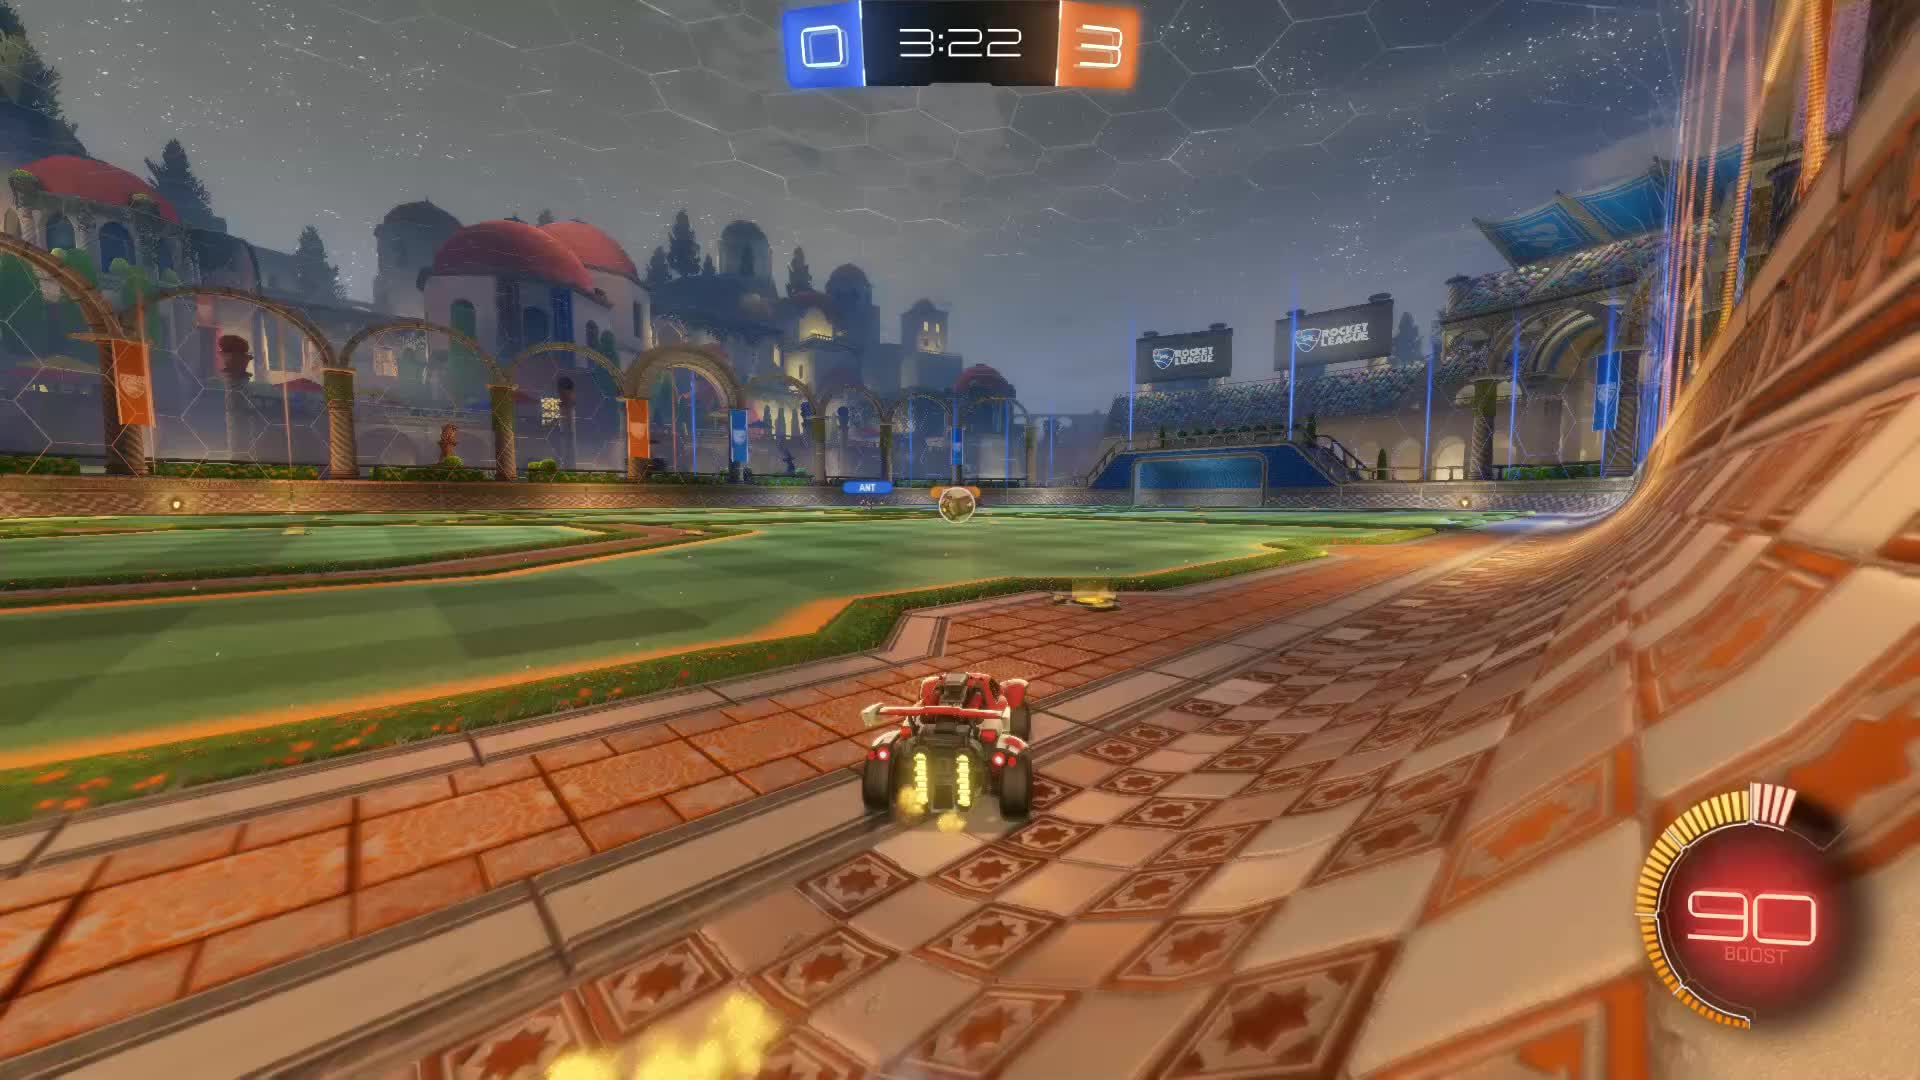 Gif Your Game, GifYourGame, Goal, Nyhx, Rocket League, RocketLeague, Goal 4: Nyhx GIFs